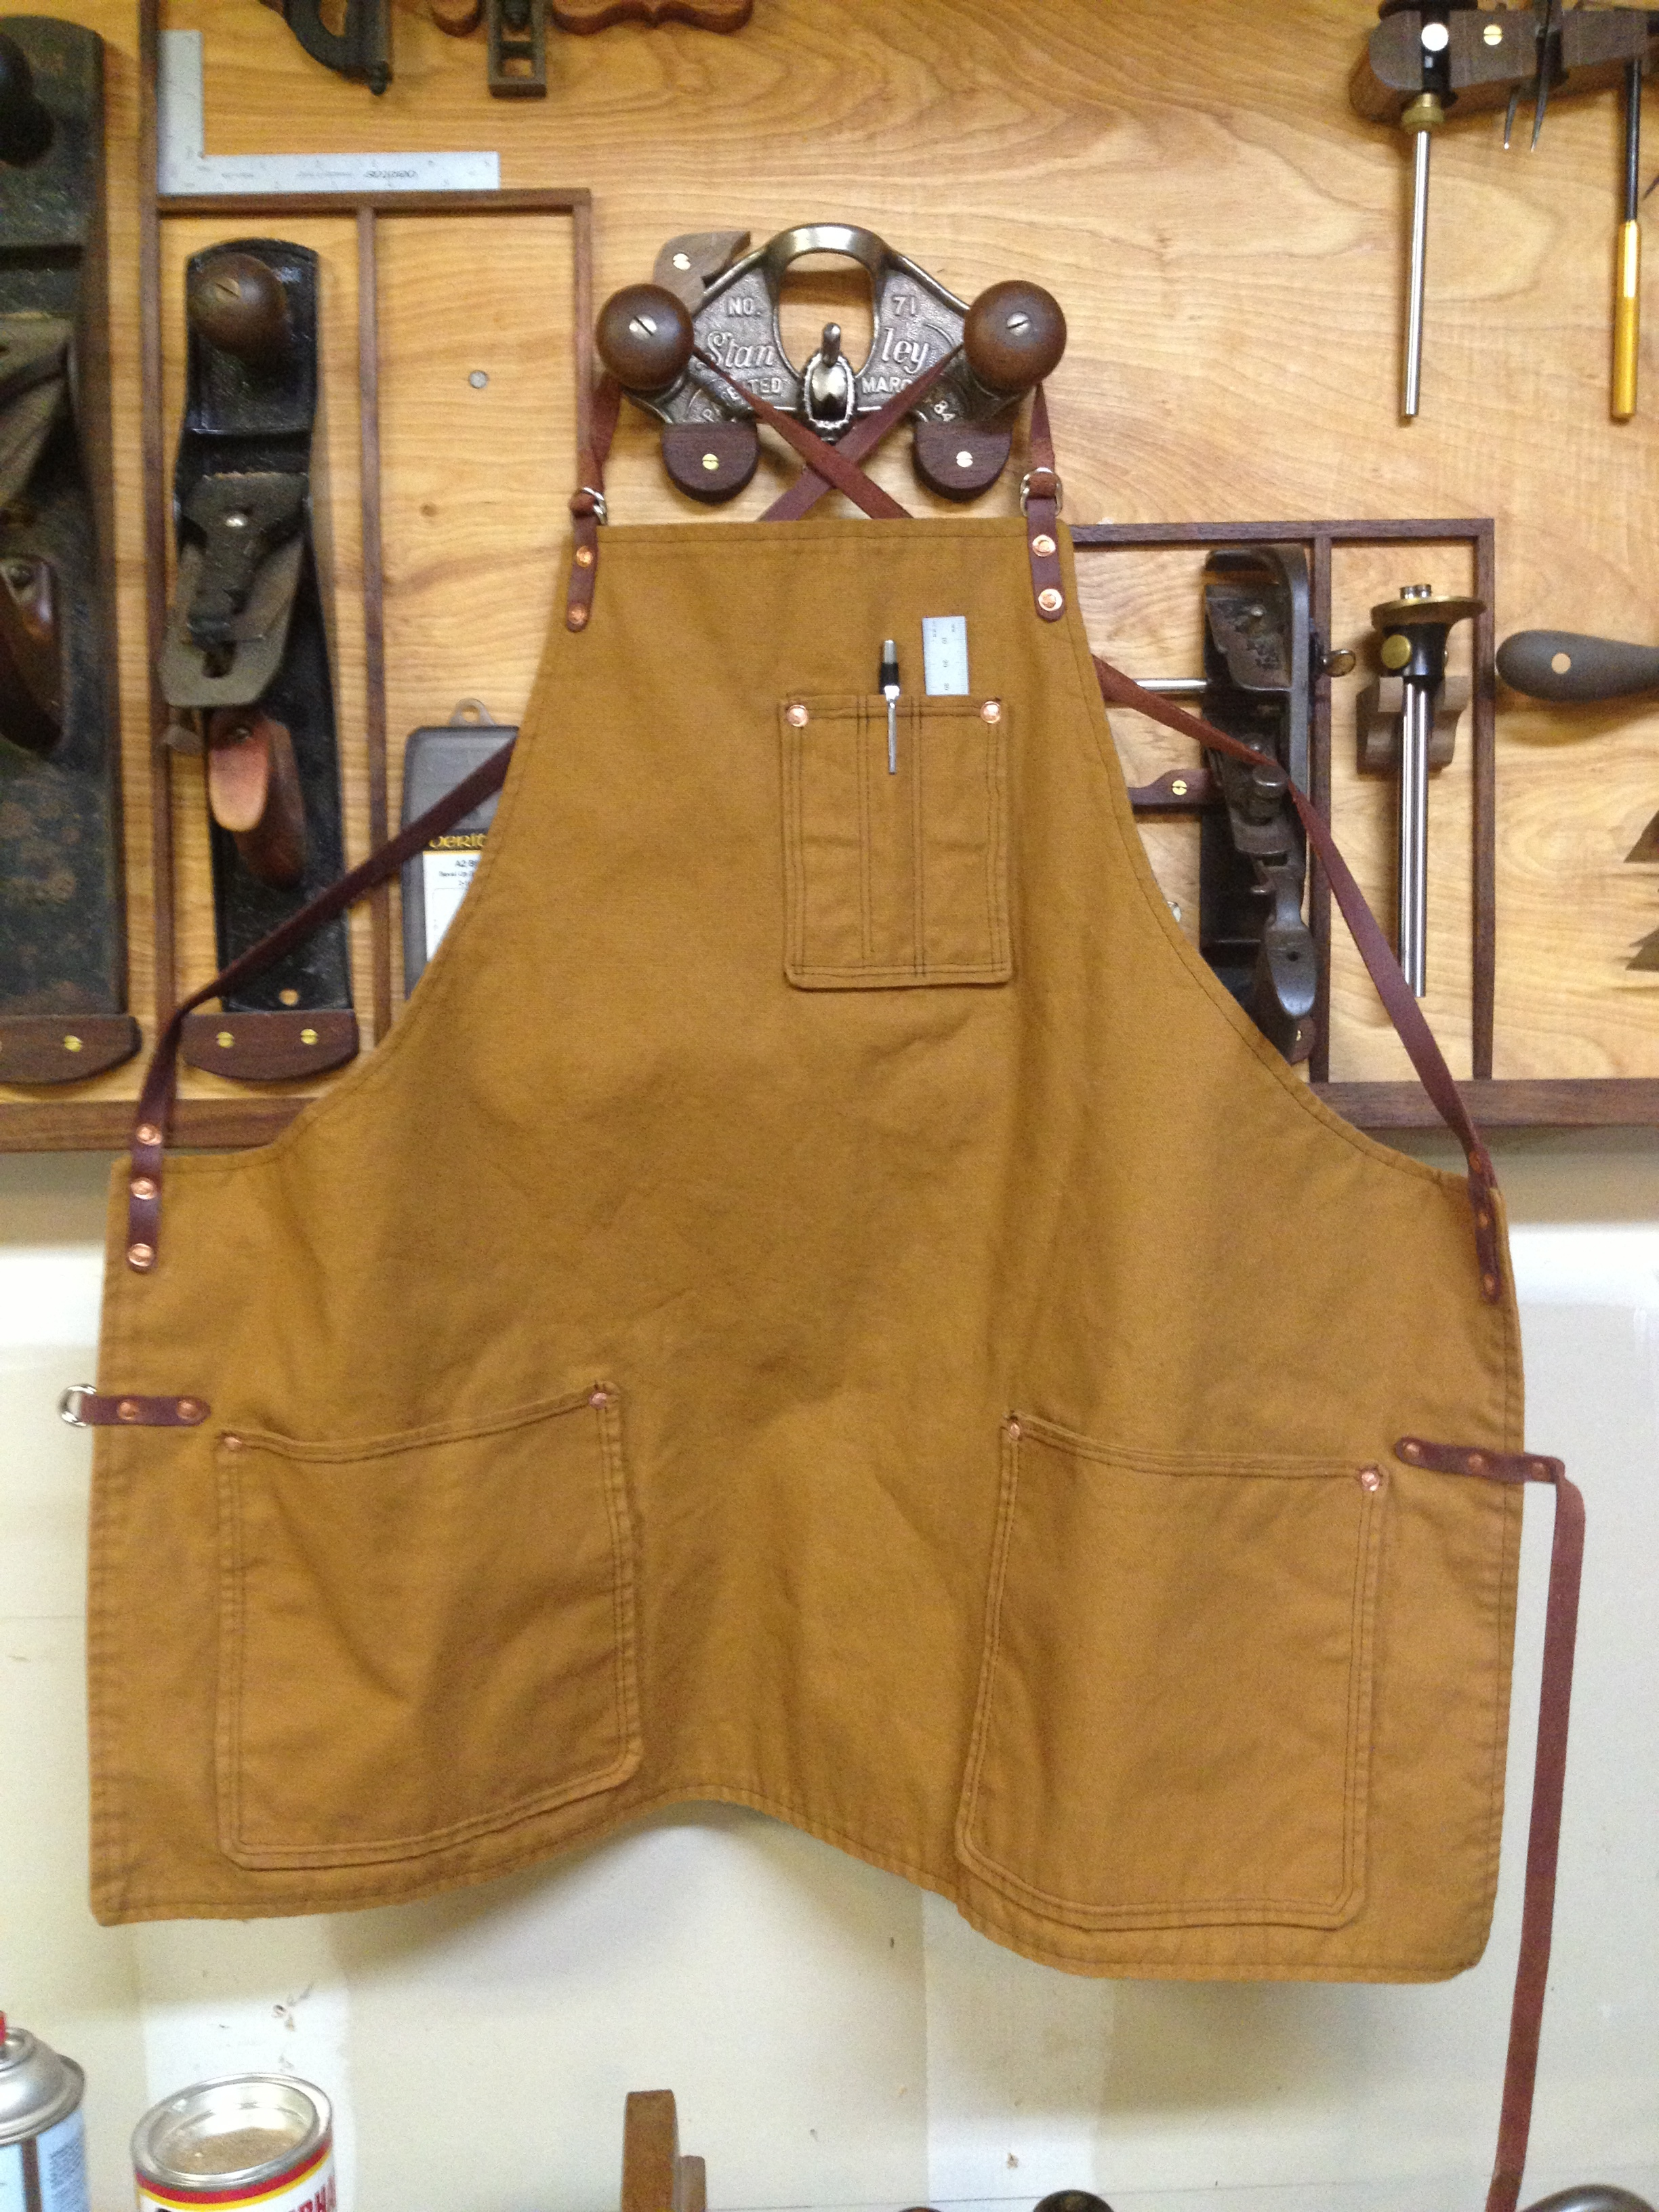 The original Texas Heritage apron. Rough around the edges, but a good start!